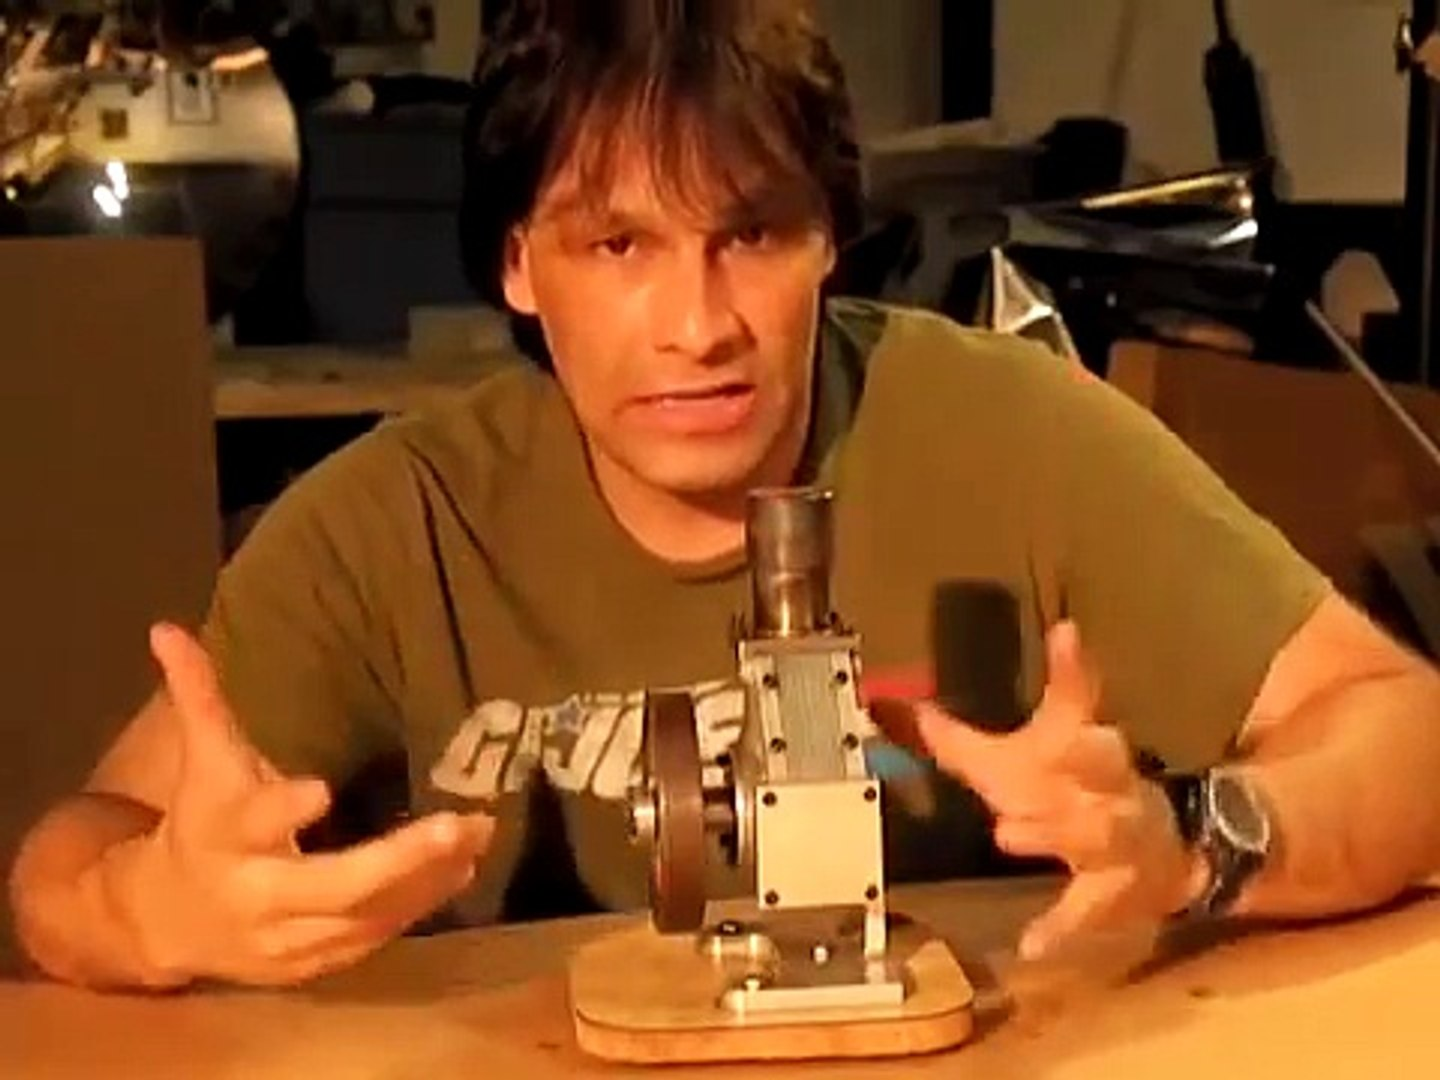 Inside A Stirling Engine Andy Ross Stirling Engine Kit Design Video Dailymotion